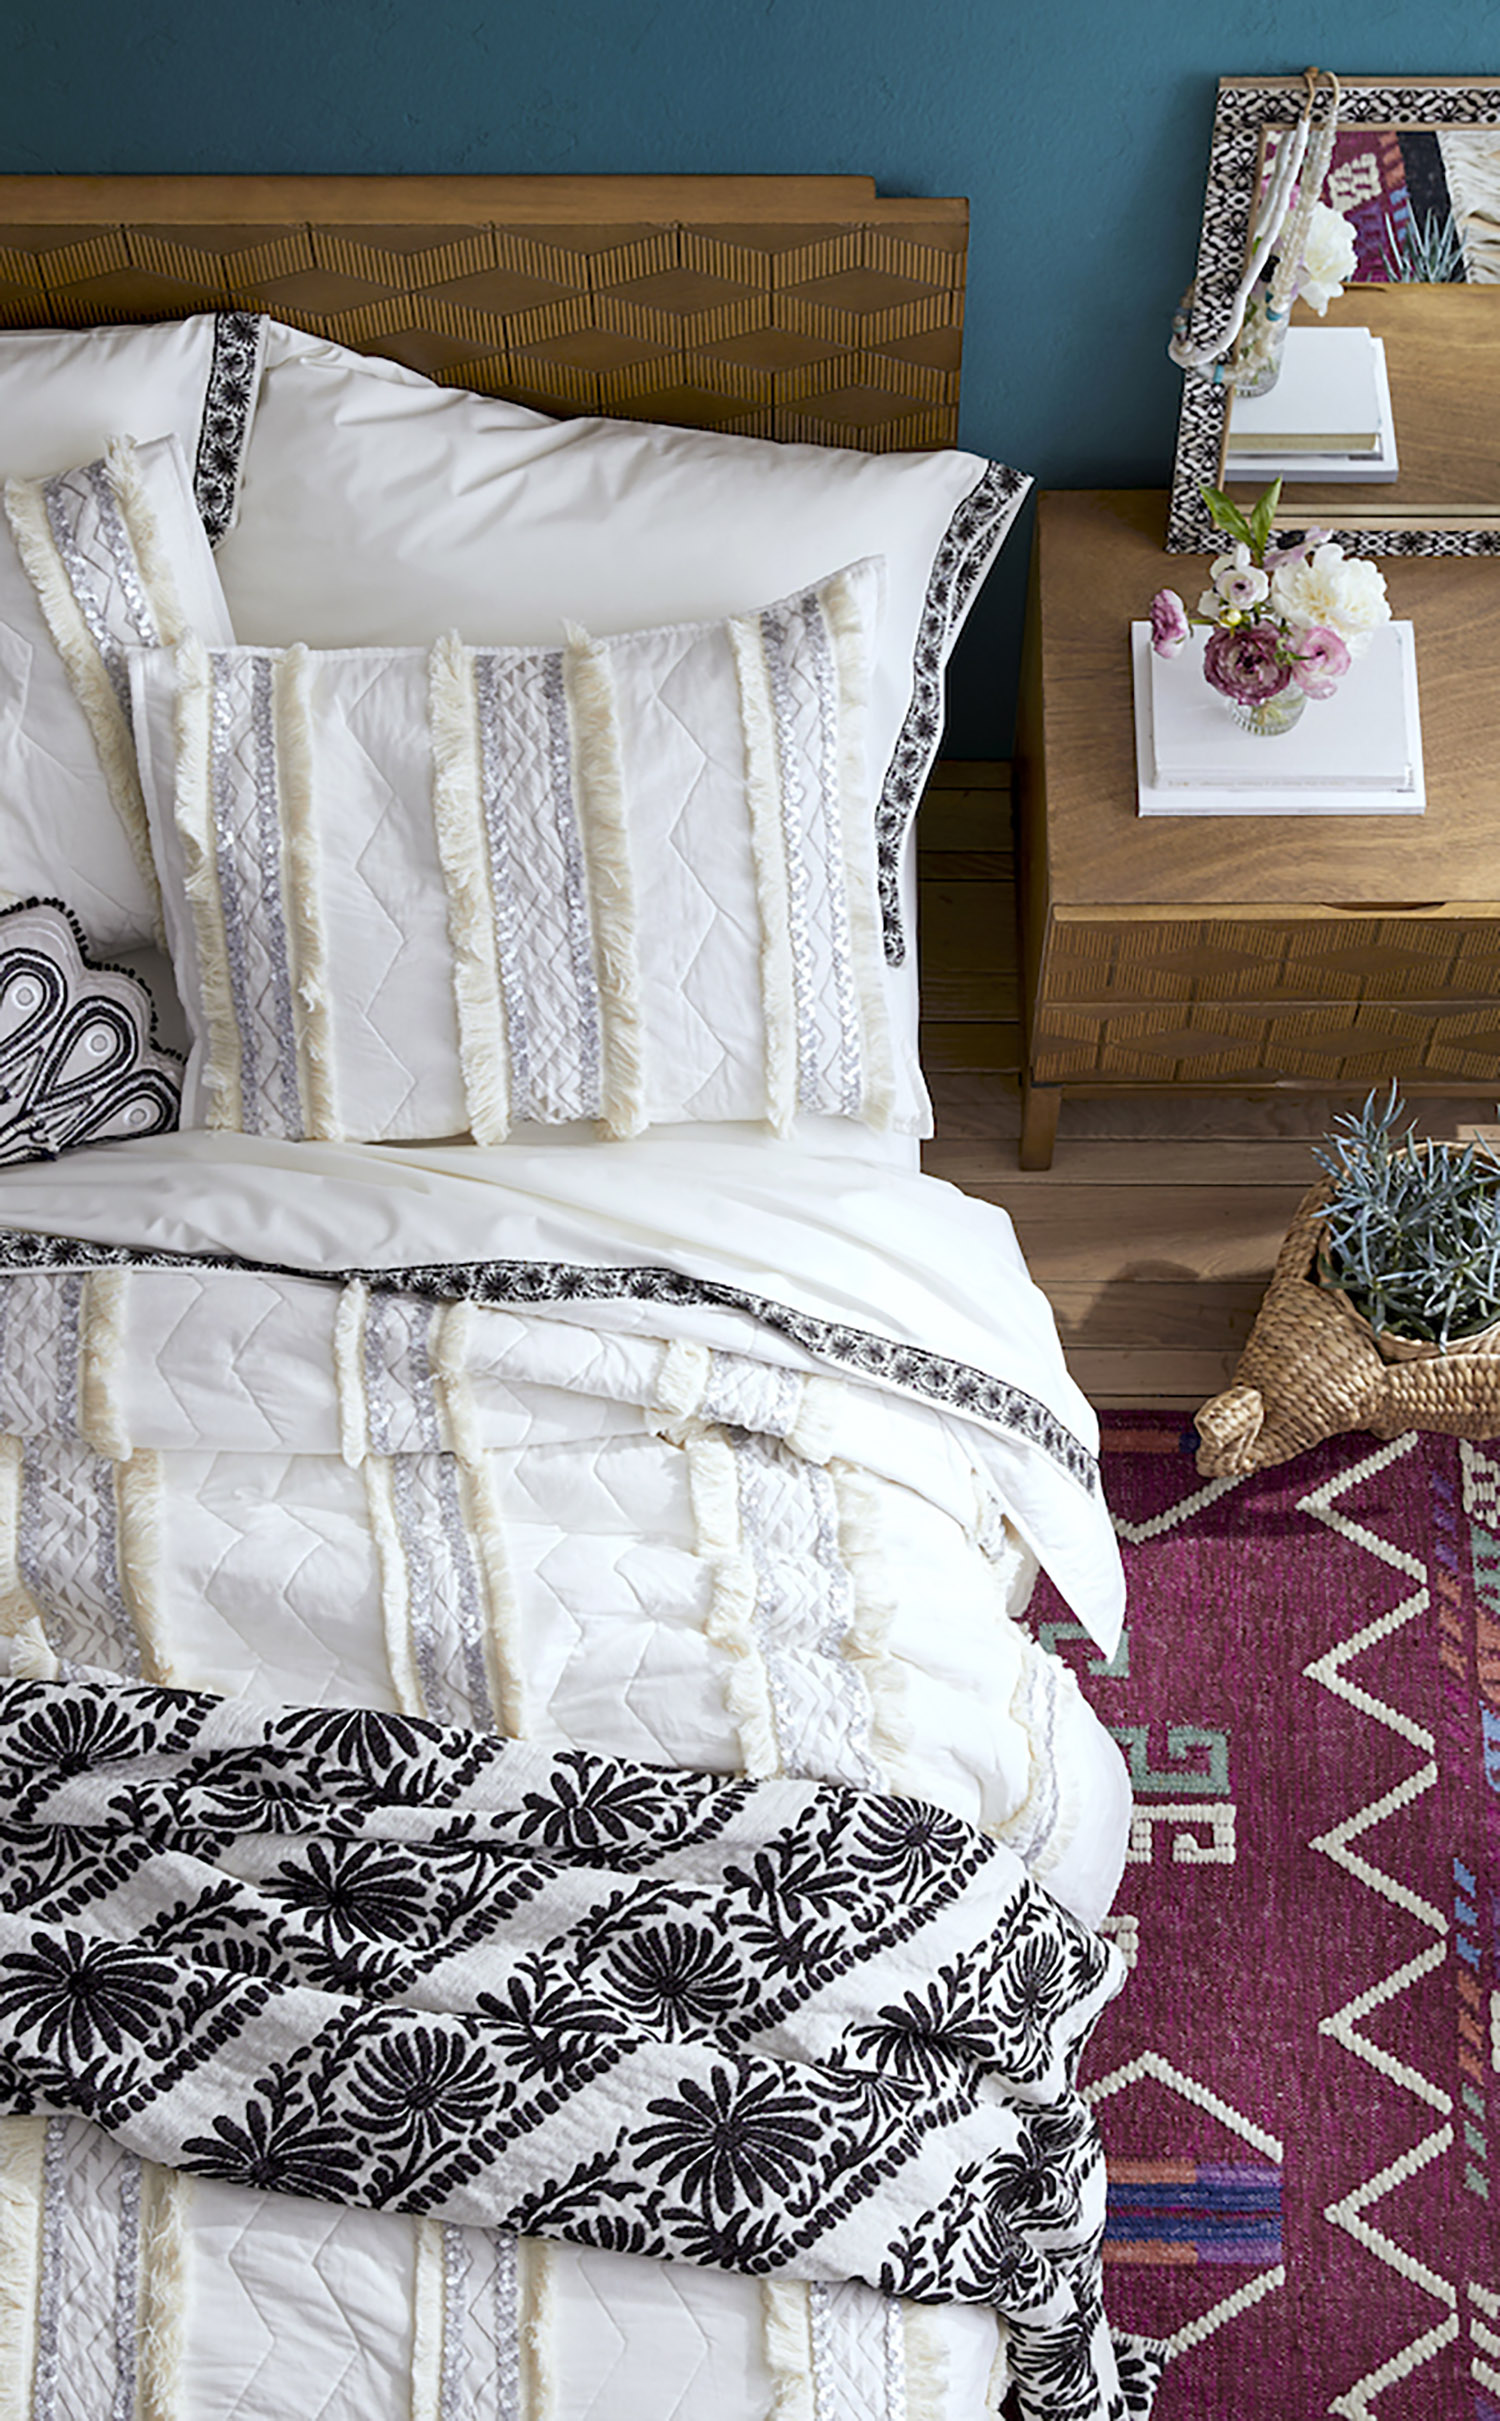 Target's Newest Home Line has all the Boho Vibes | Design Confetti